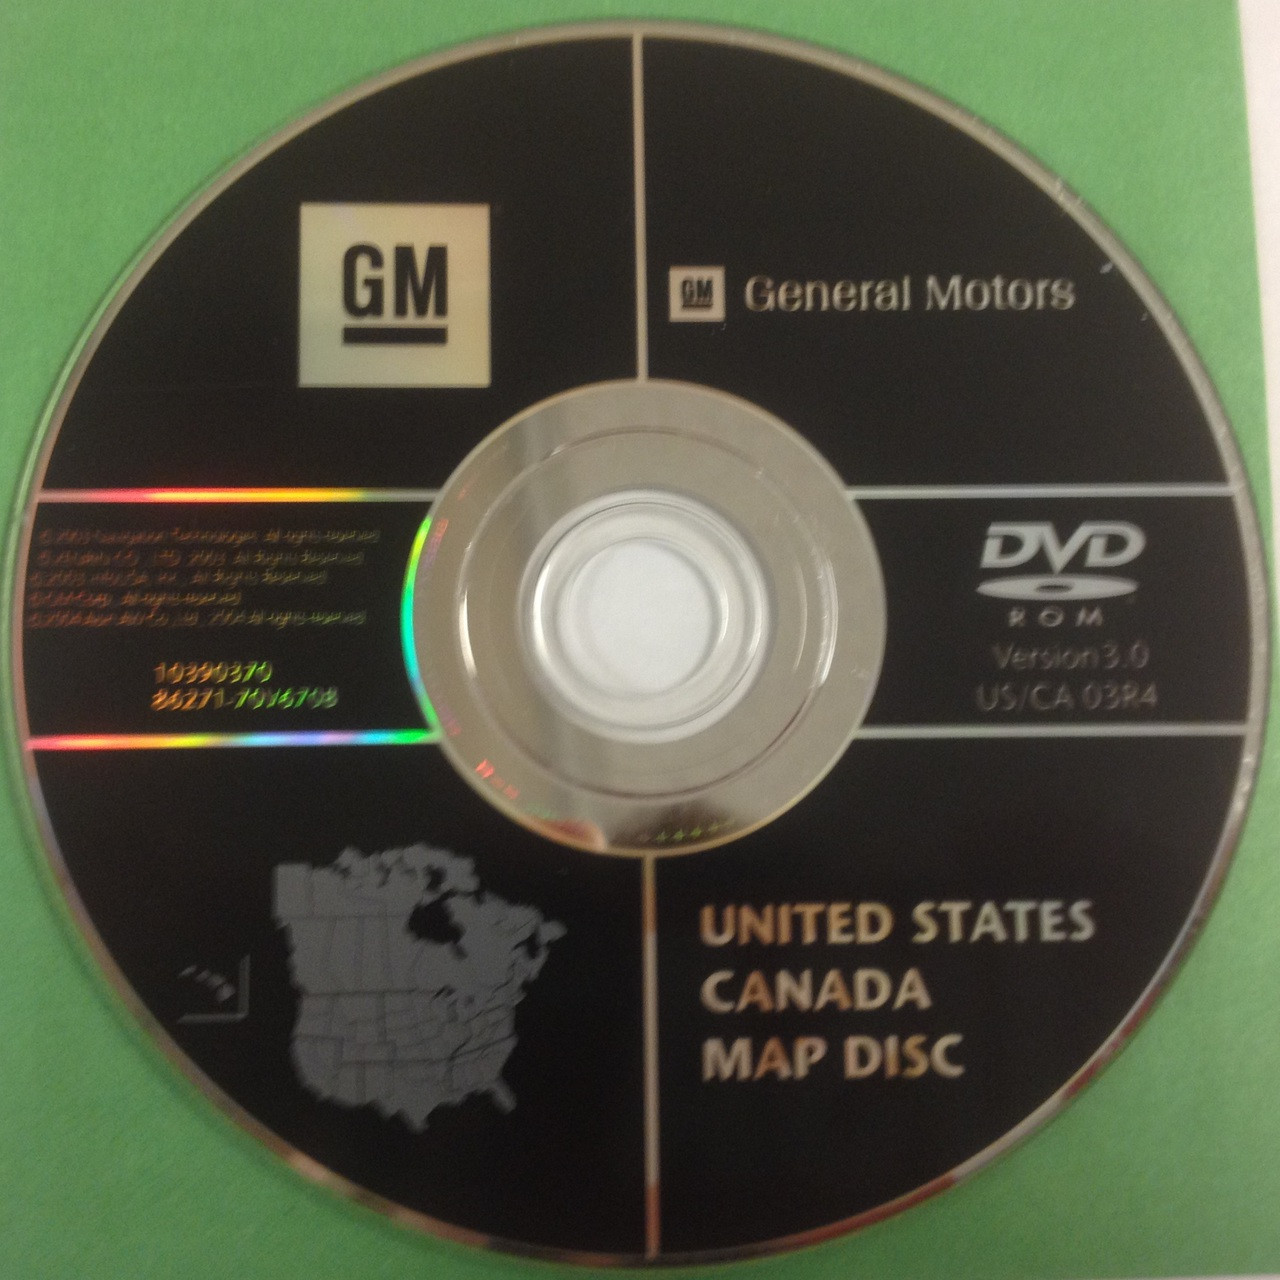 GM Satellite Navigation System CD 10390370 Version 3.0 - CD4Car